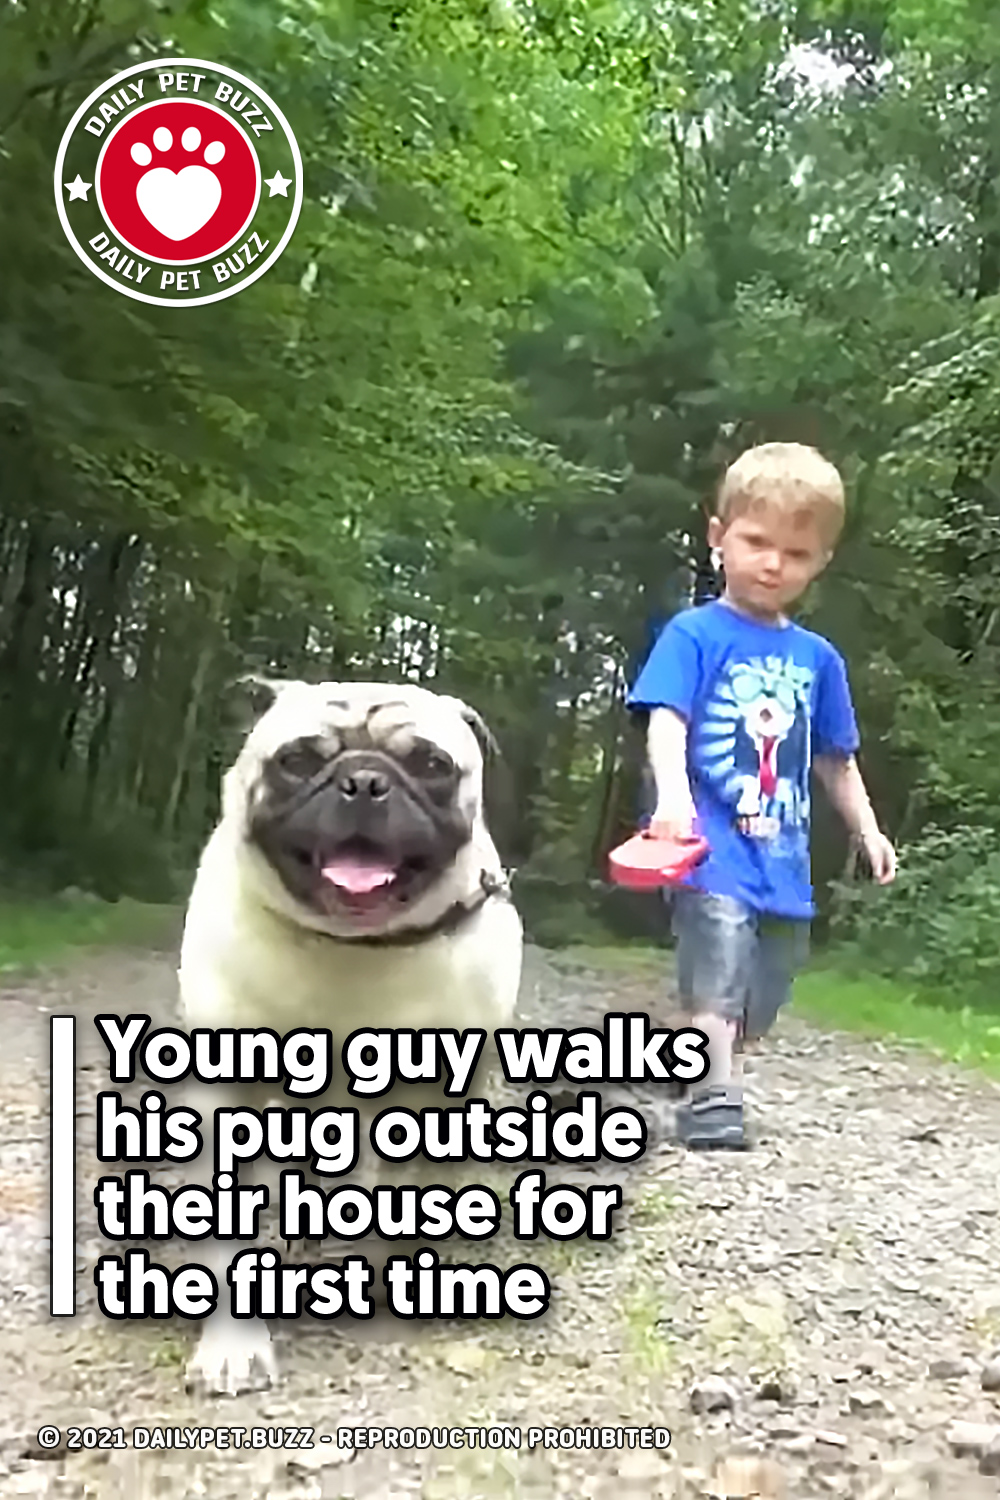 Young guy walks his pug outside their house for the first time